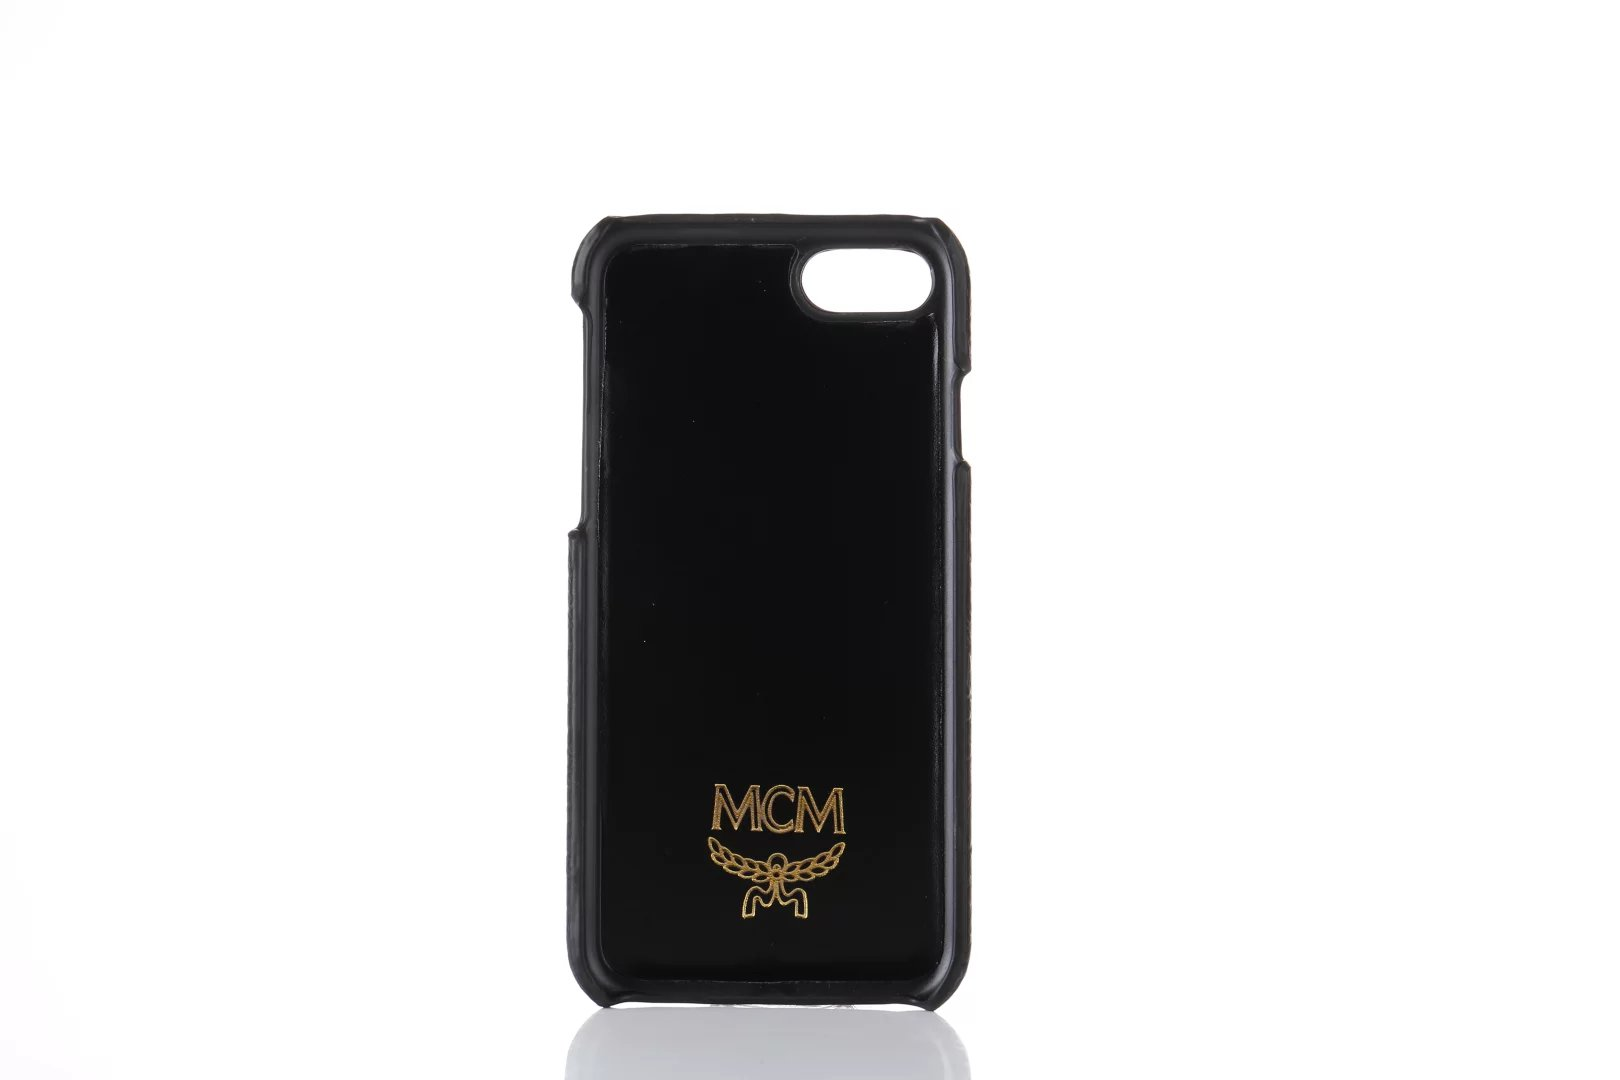 design your iphone 8 case iphone 8 case maker MCM iphone 8 case iphone 8 cases women how do i charge my mophie juice pack plus mophie retailers mophie iphone 8 case top cell phone case brands phone cases for a iphone 8